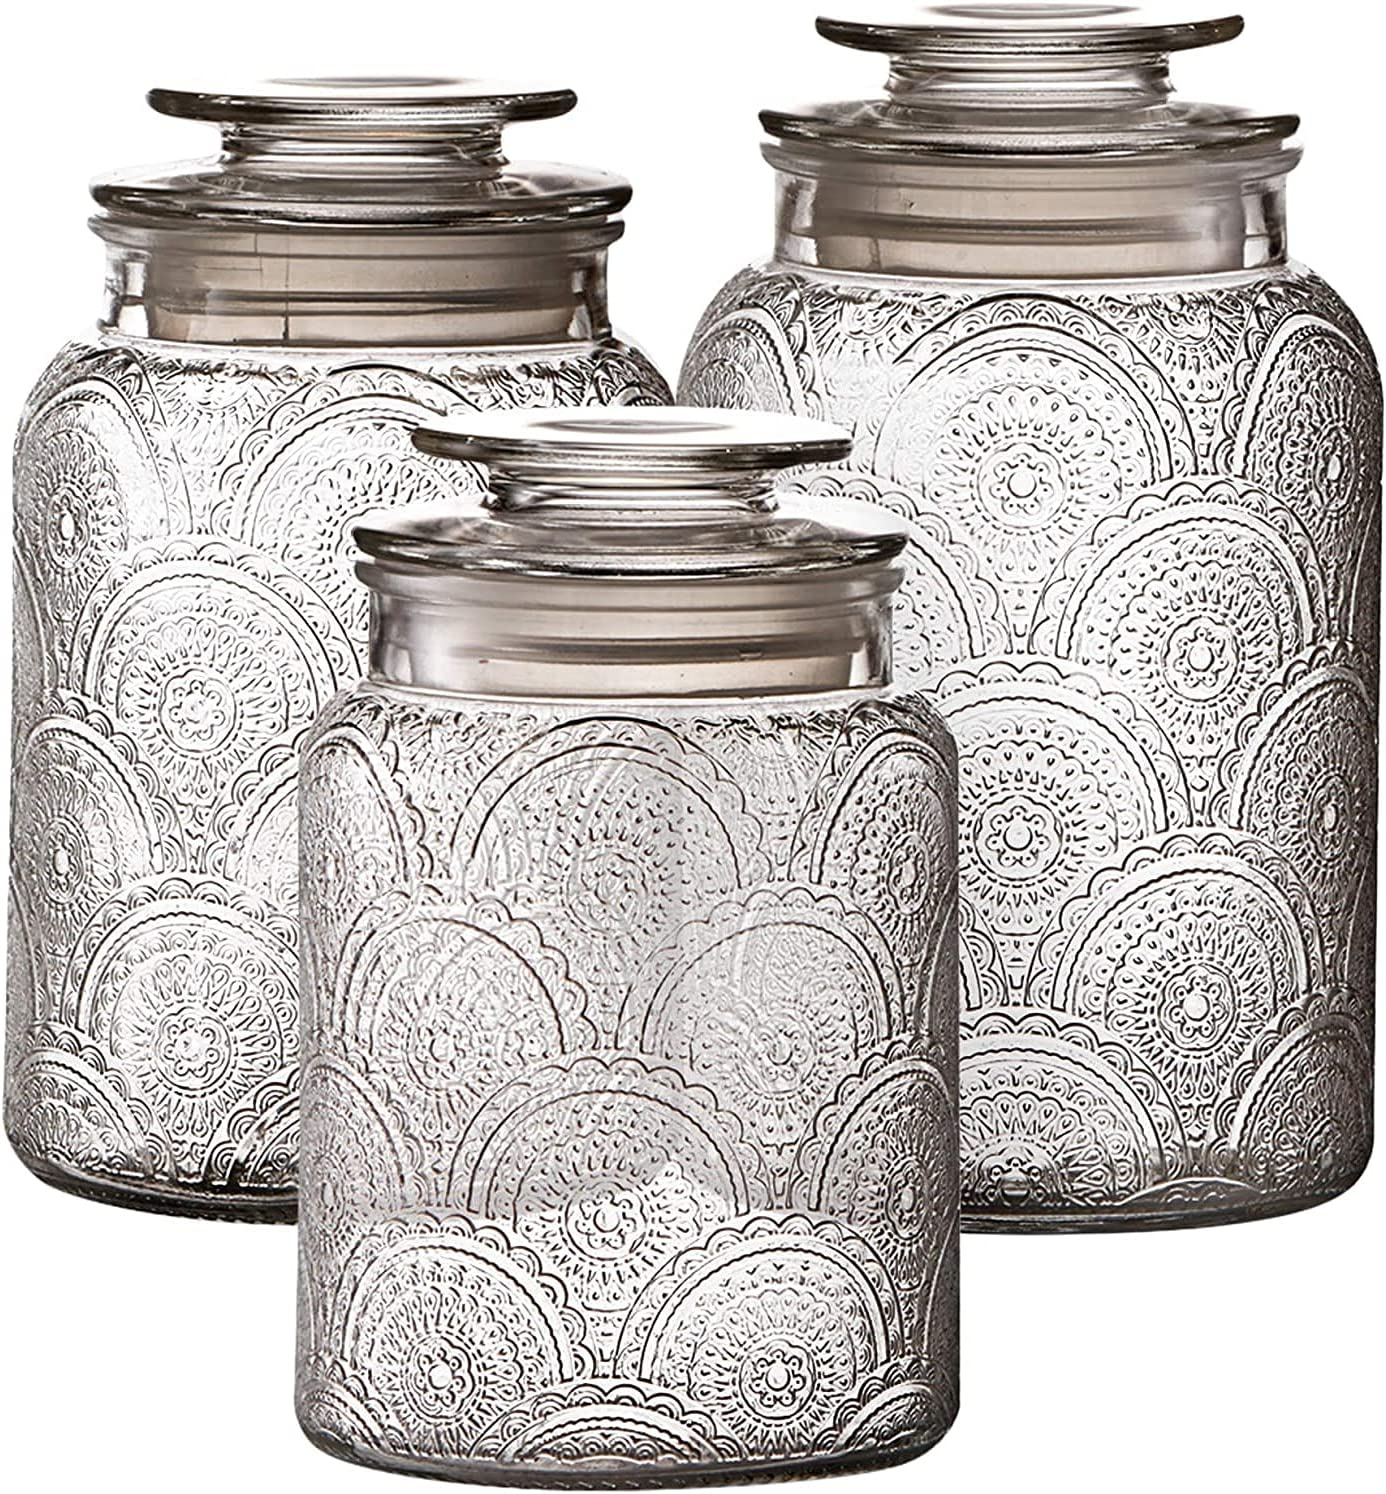 3pc Glass Canisters Set for Kitchen with Max 74% OFF - Lids Max 44% OFF Counter Airtight